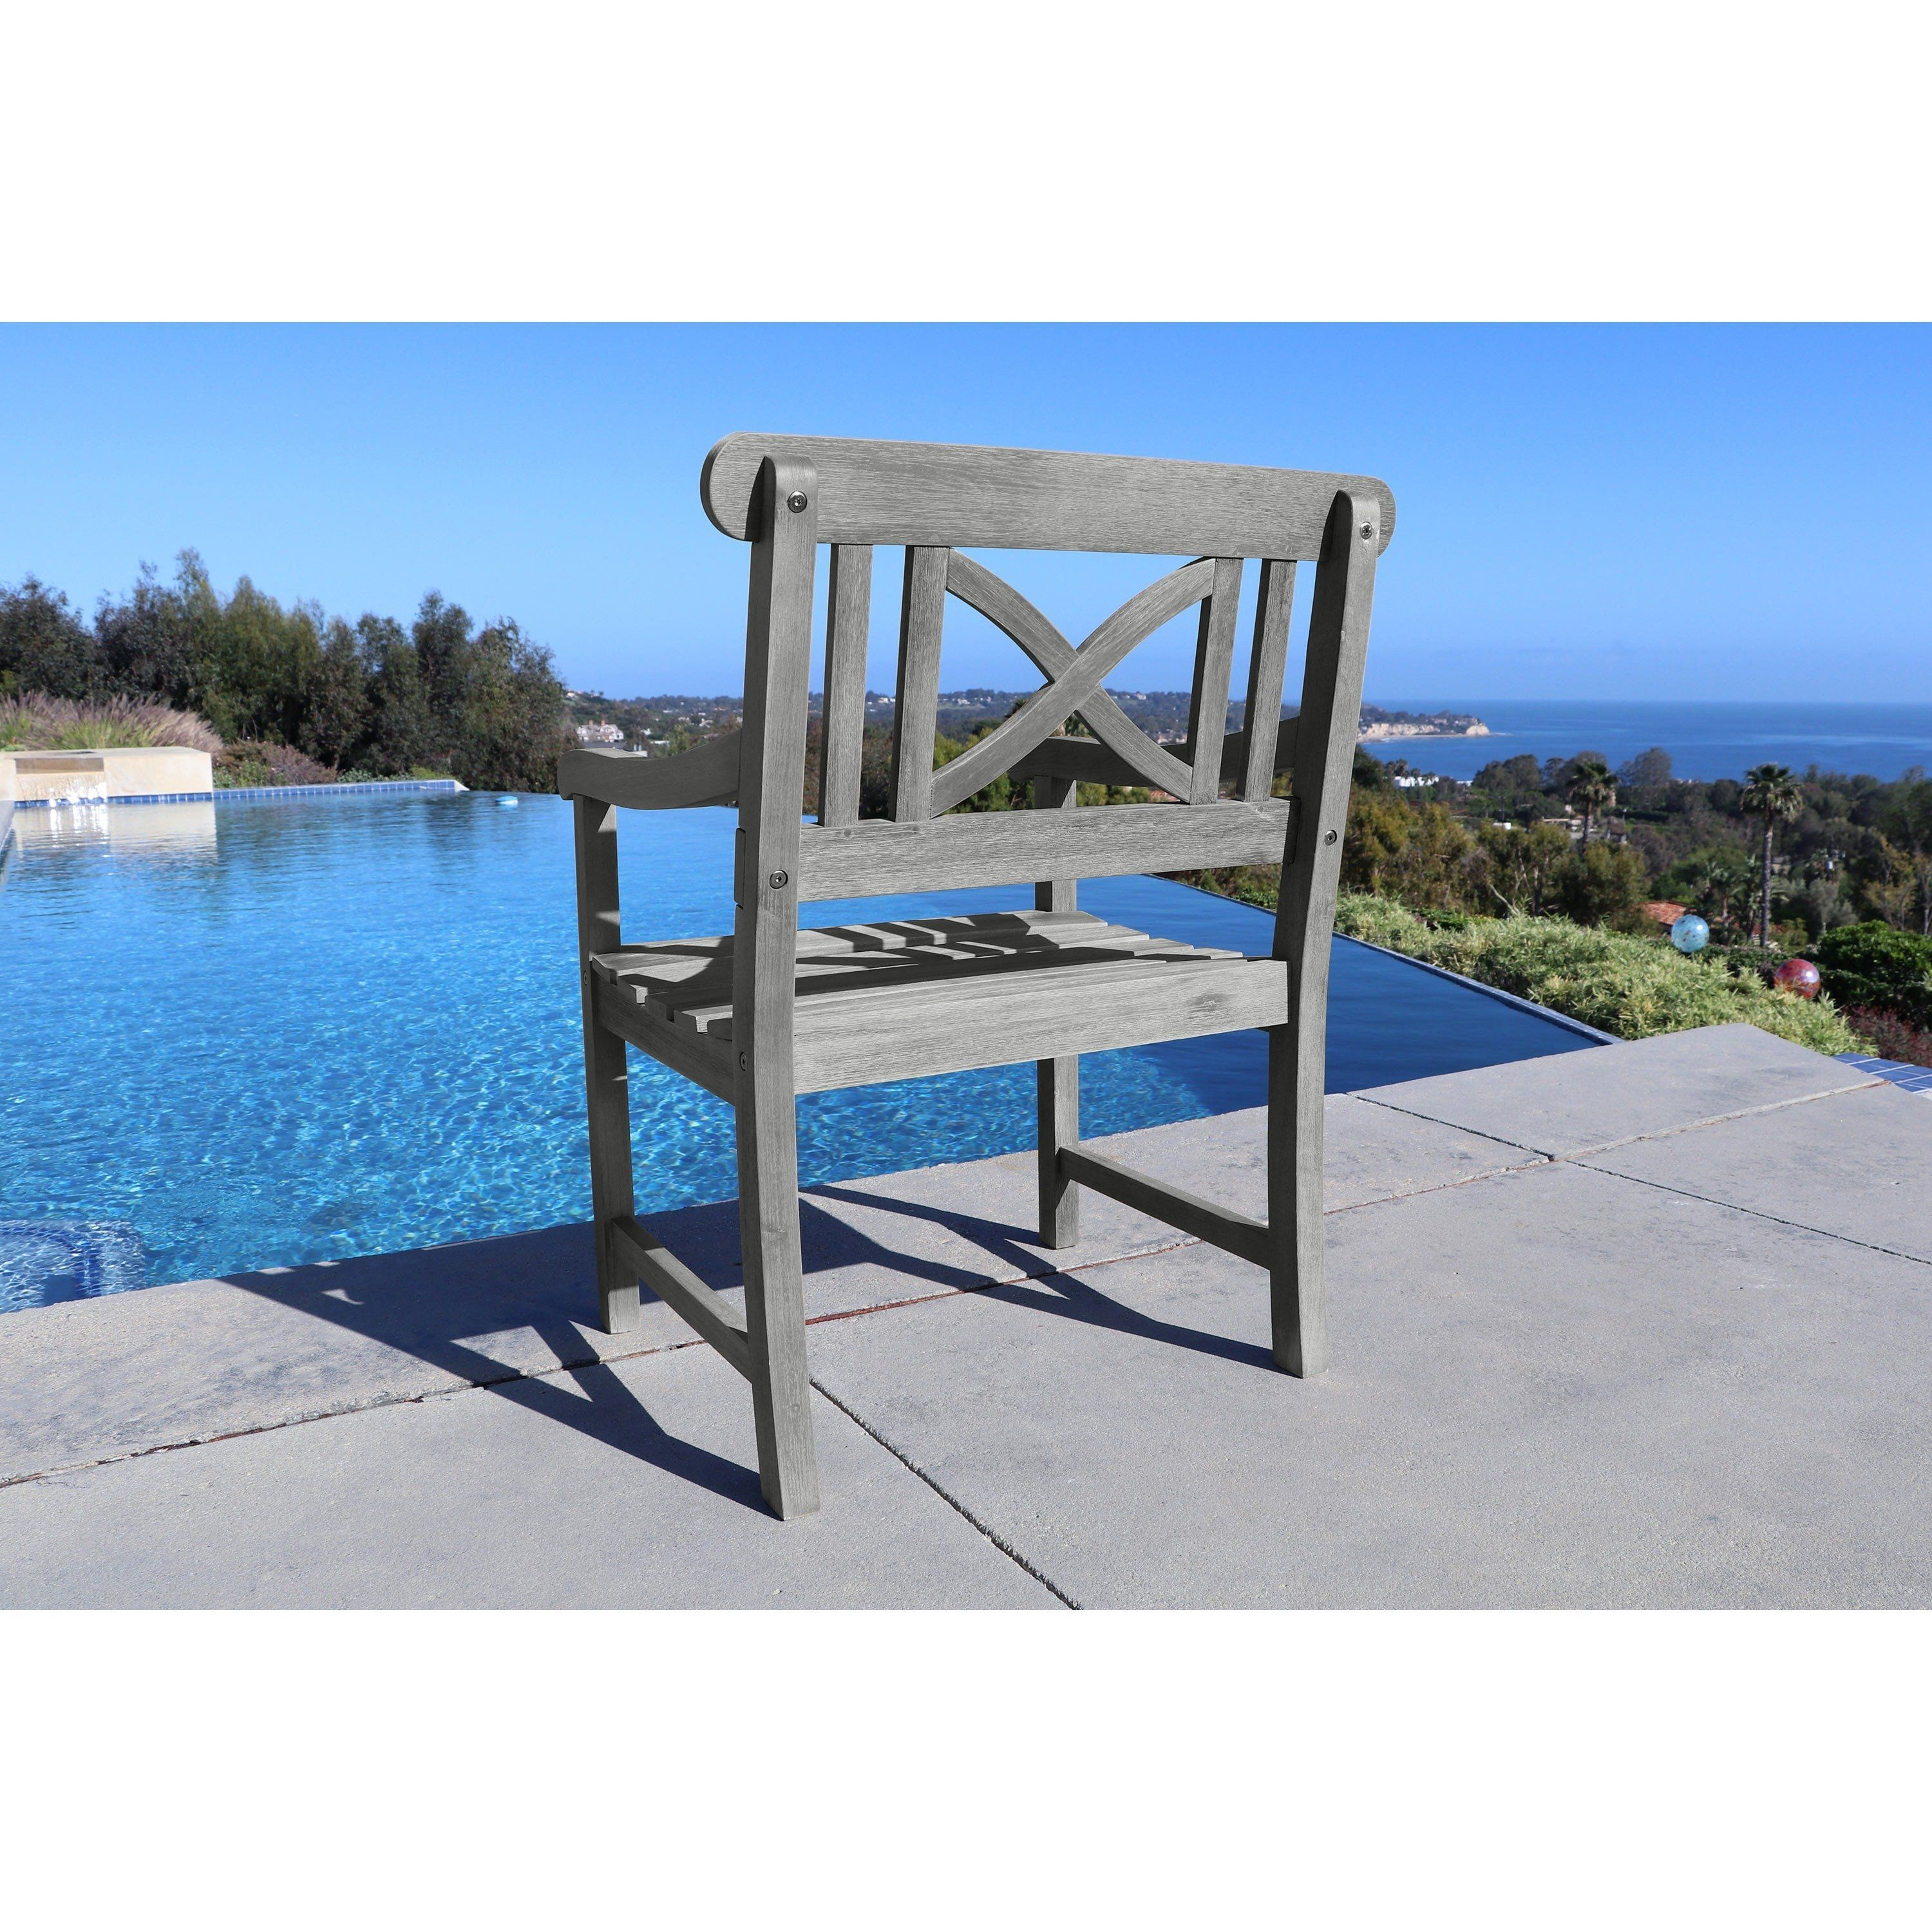 2020 Havenside Home Surfside Weather Resistant Outdoor Hand Pertaining To Havenside Home Surfside Outdoor Lounge Chairs (View 9 of 25)